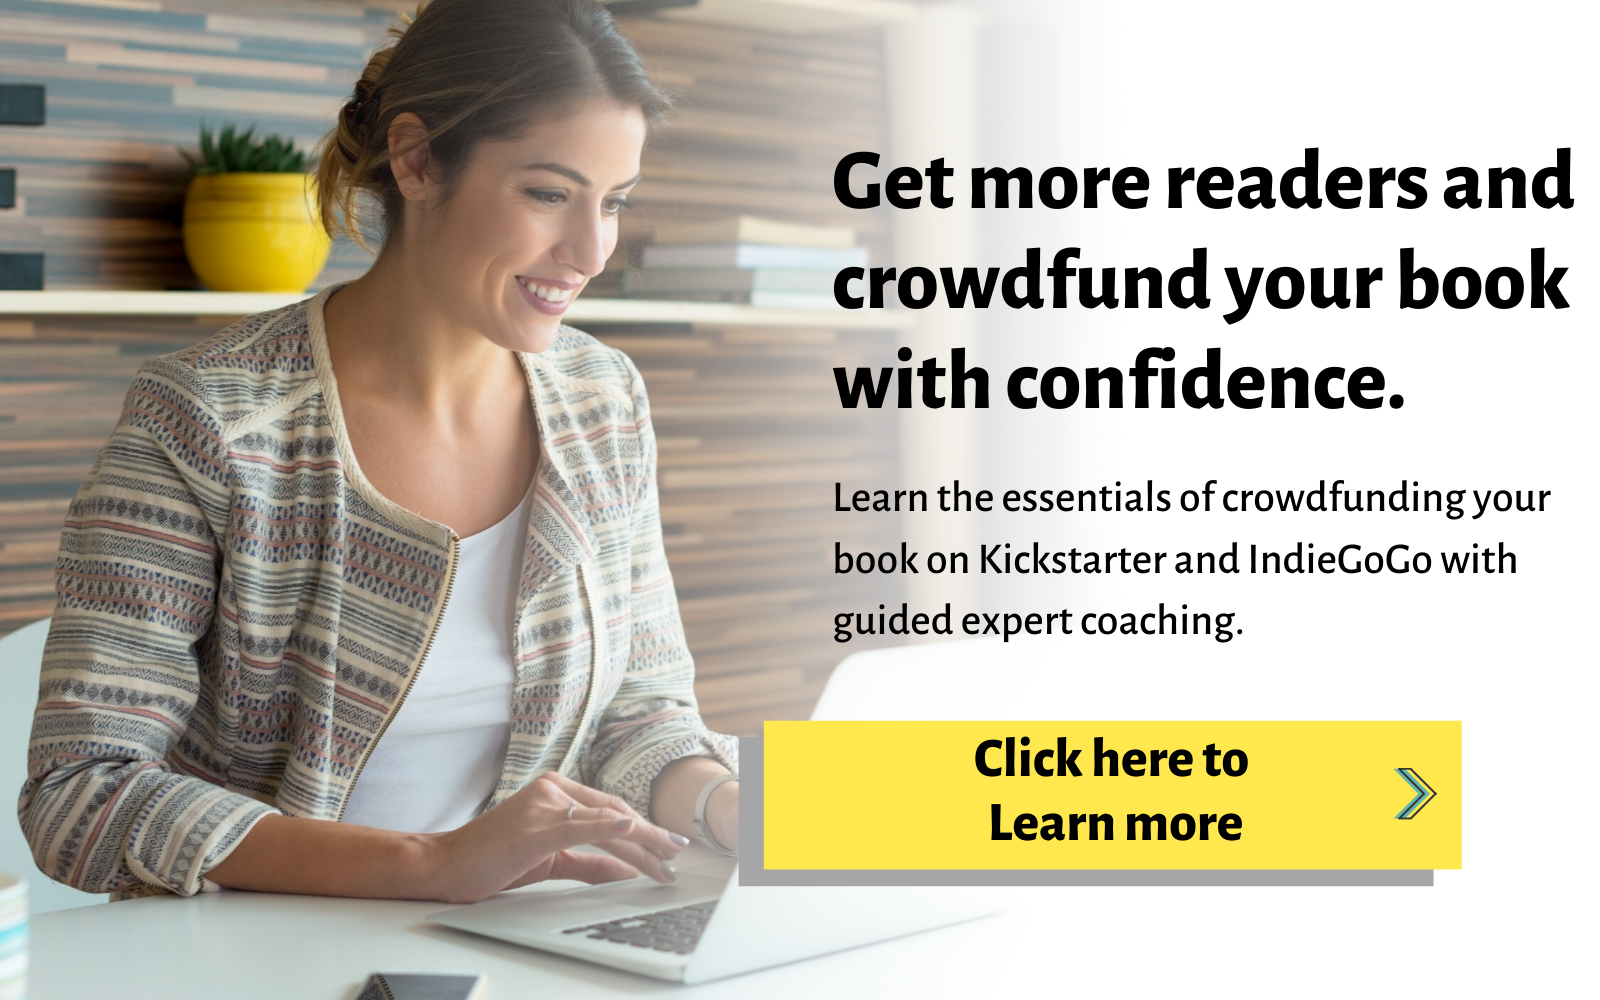 Crowdfund your book course click to learn more